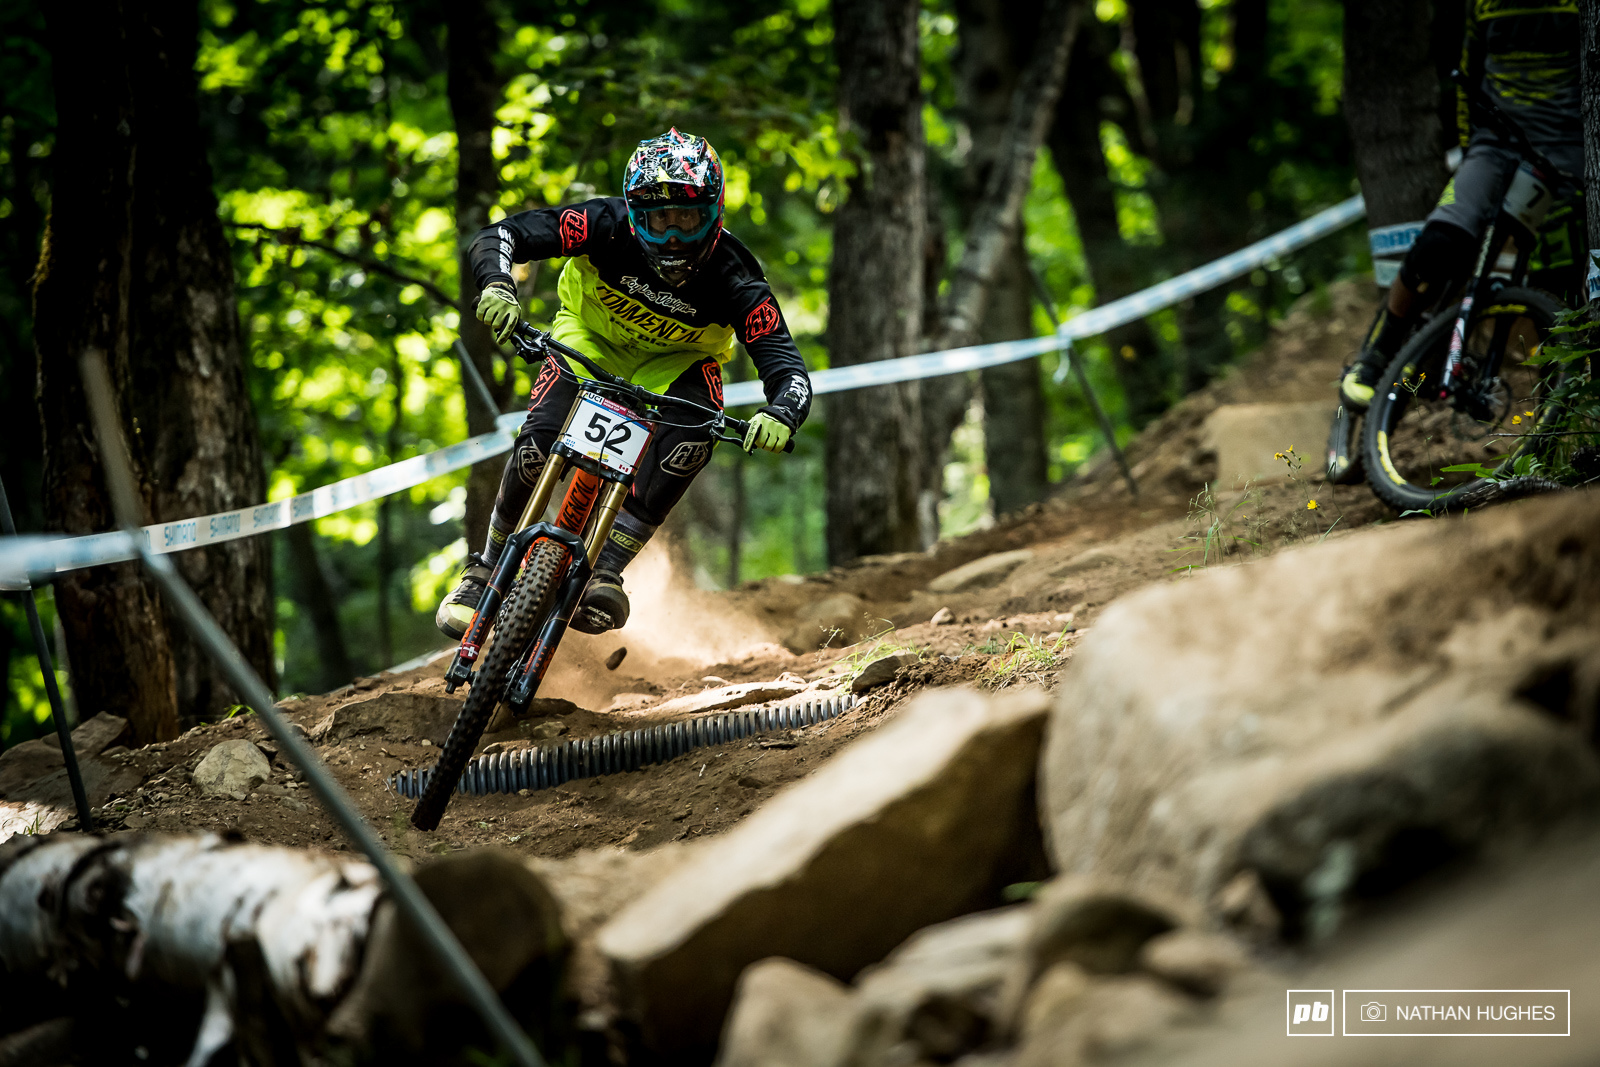 Amaury Pierron was out doing damage to the course today. After crashing out of his come-back run in Lenzerheide the Commencal Lac Blanc has a score to settle.